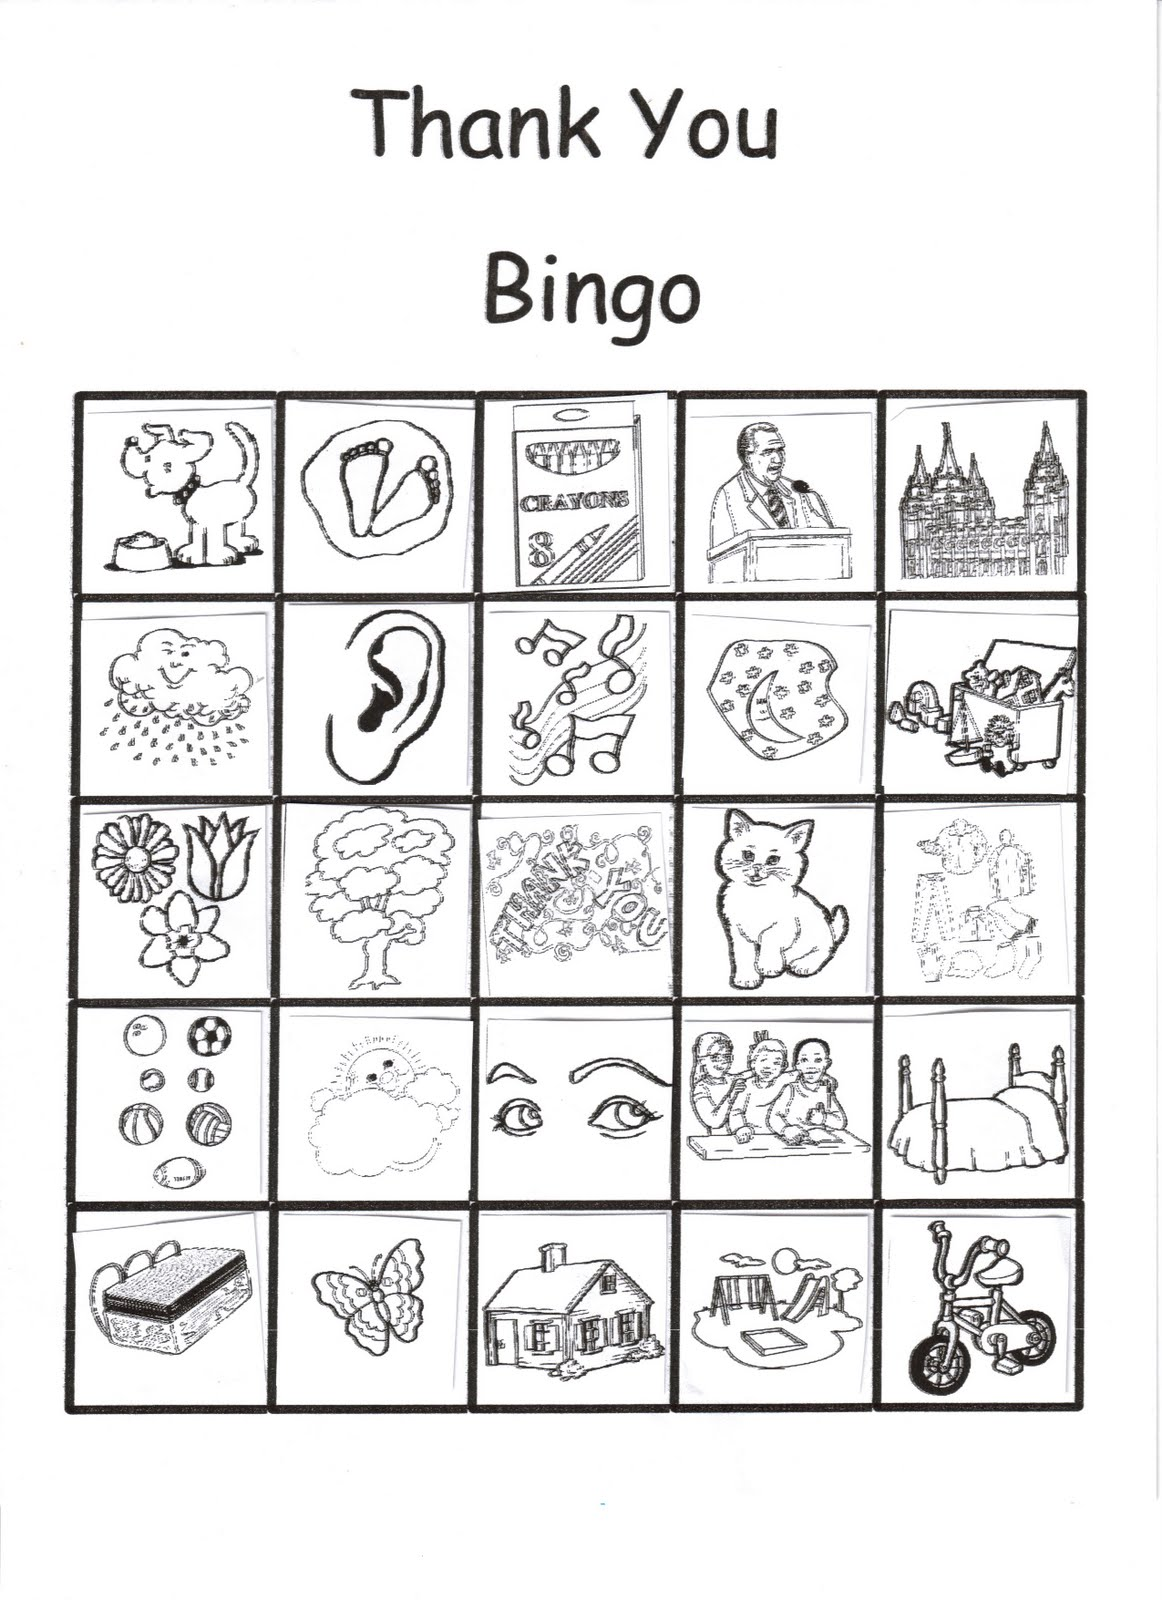 RobbyGurl's Creations: Thank You Bingo